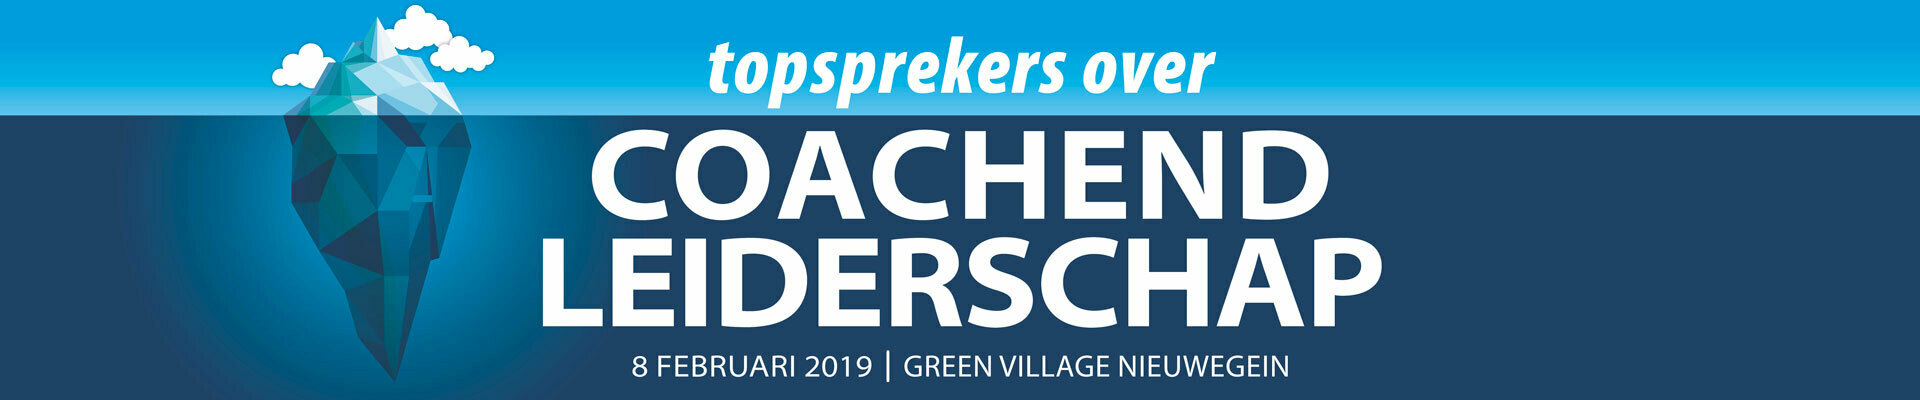 Topsprekers over coachend leiderschap | 8 februari 2019